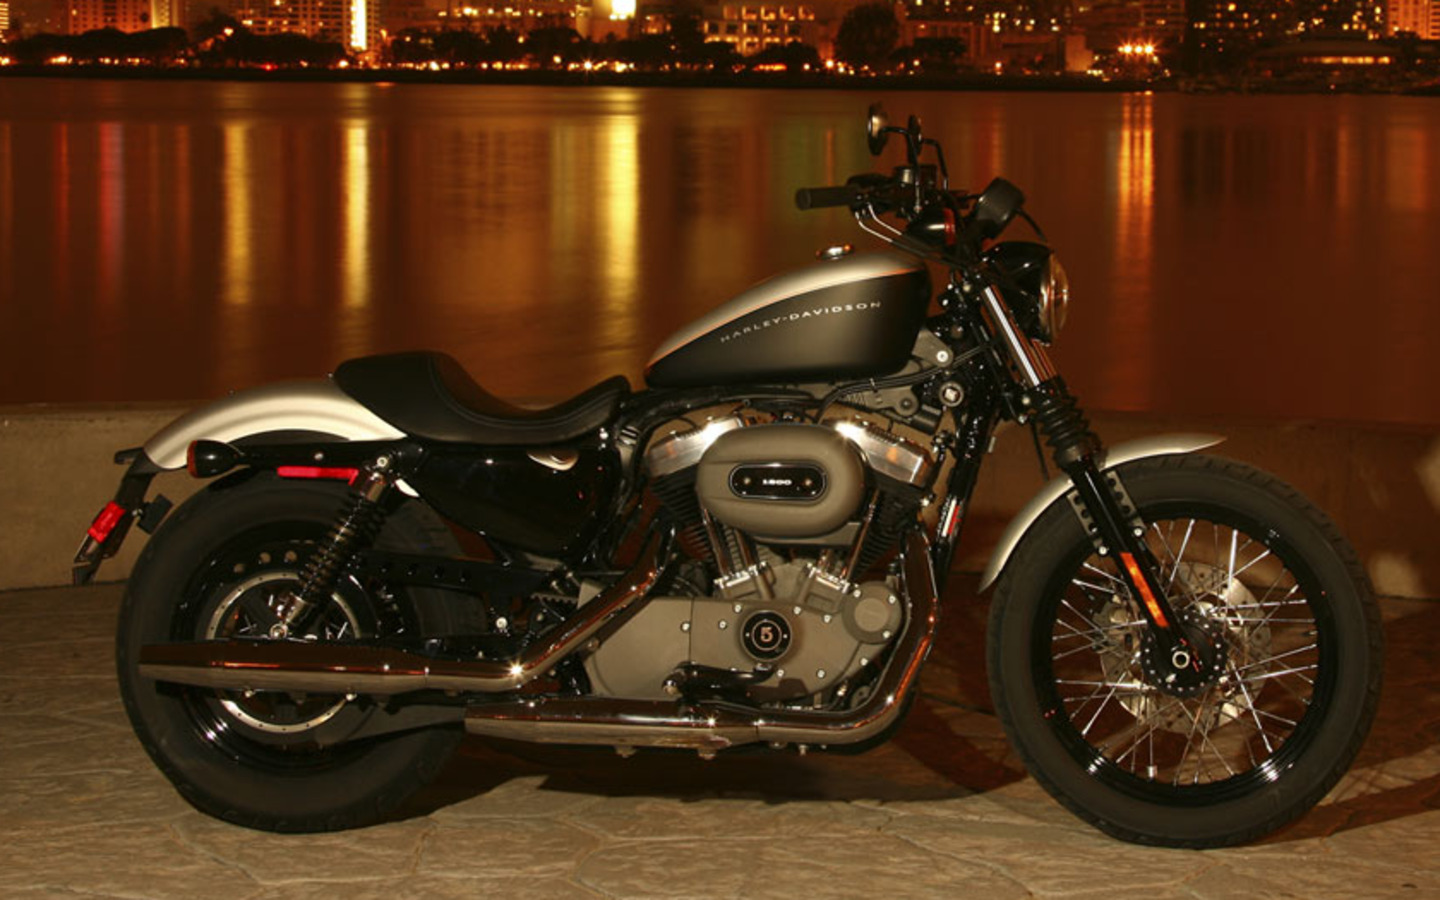 image gallery 2008 sportster 1200 nightster. Black Bedroom Furniture Sets. Home Design Ideas